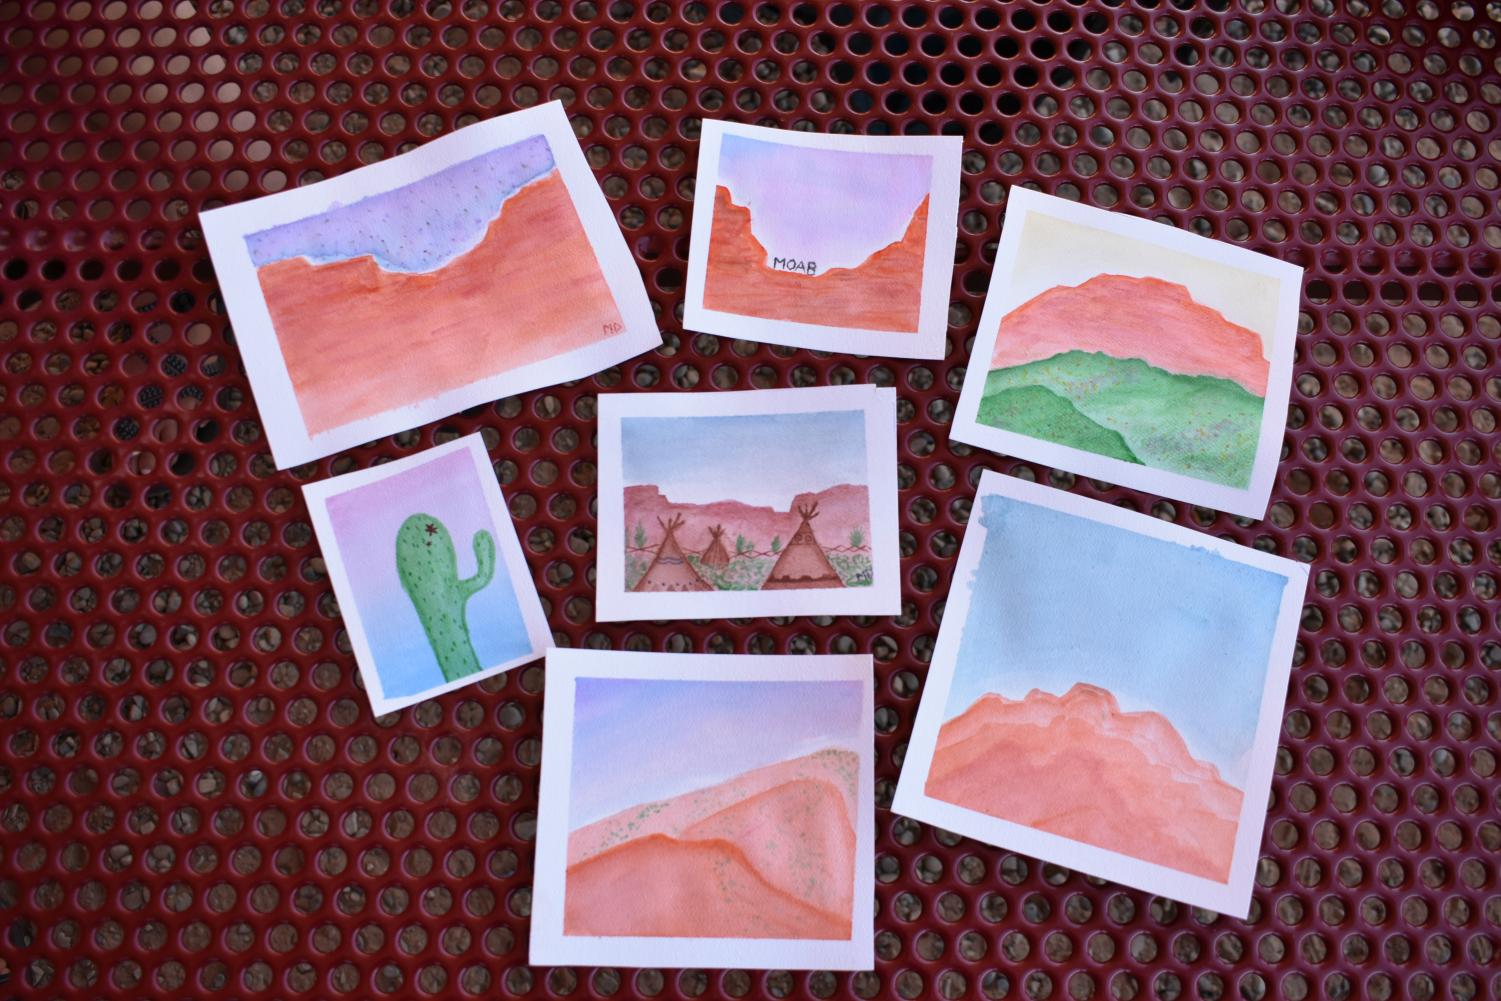 Watercolor+portraits+of+Moab+by+senior+Molly+Dugan.